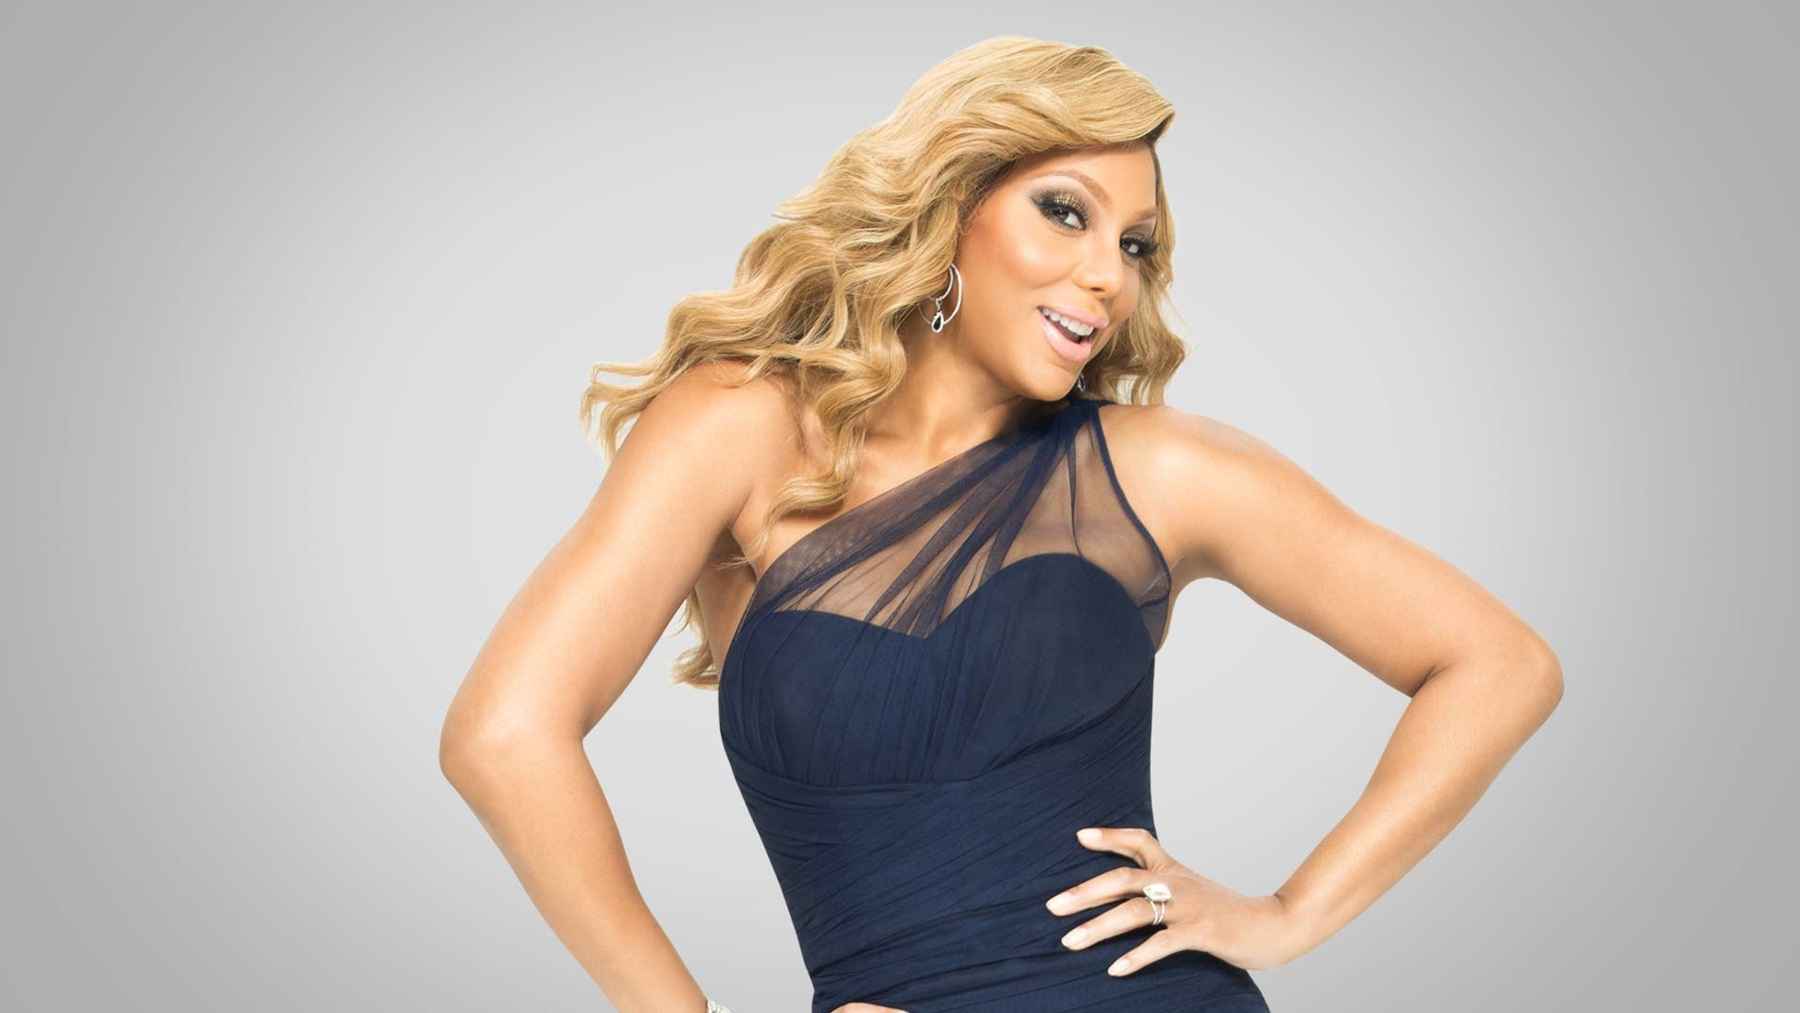 Tamar Braxton Big Brother Weight Gain